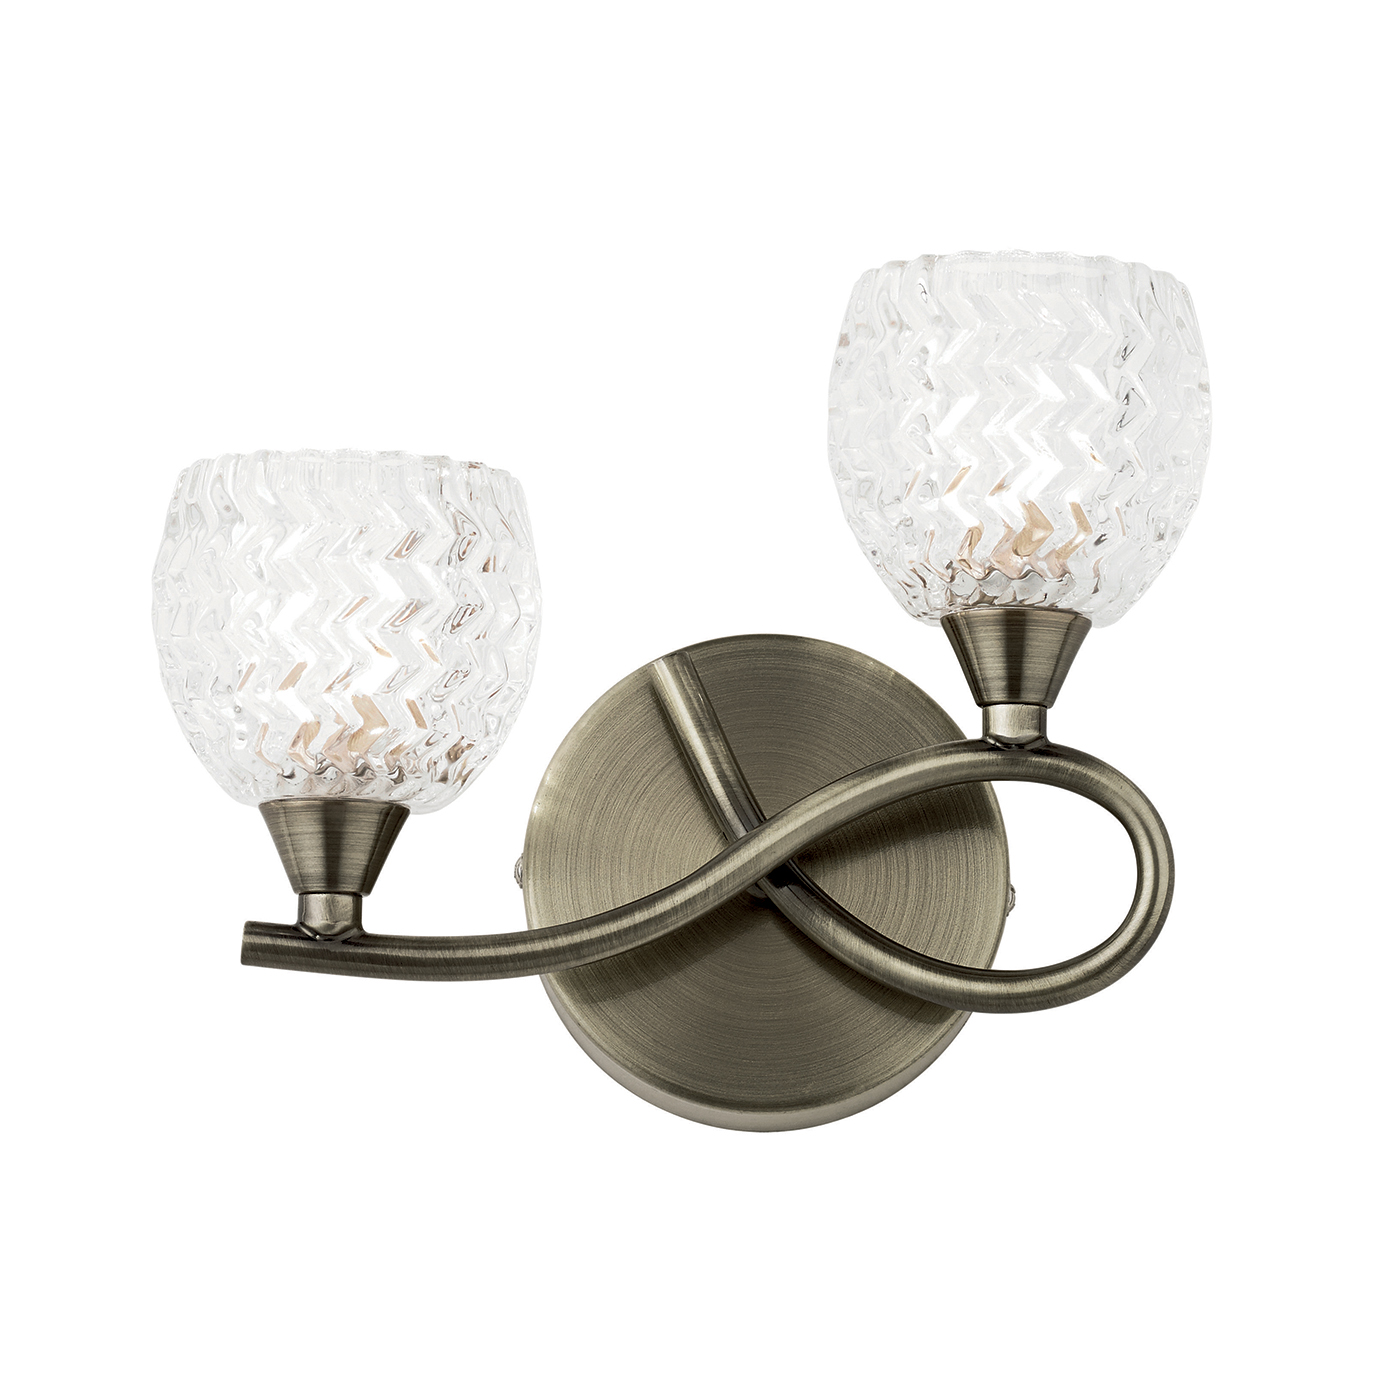 Endon Boyer 2lt right wall light 33W Antique brass clear glass with pattern